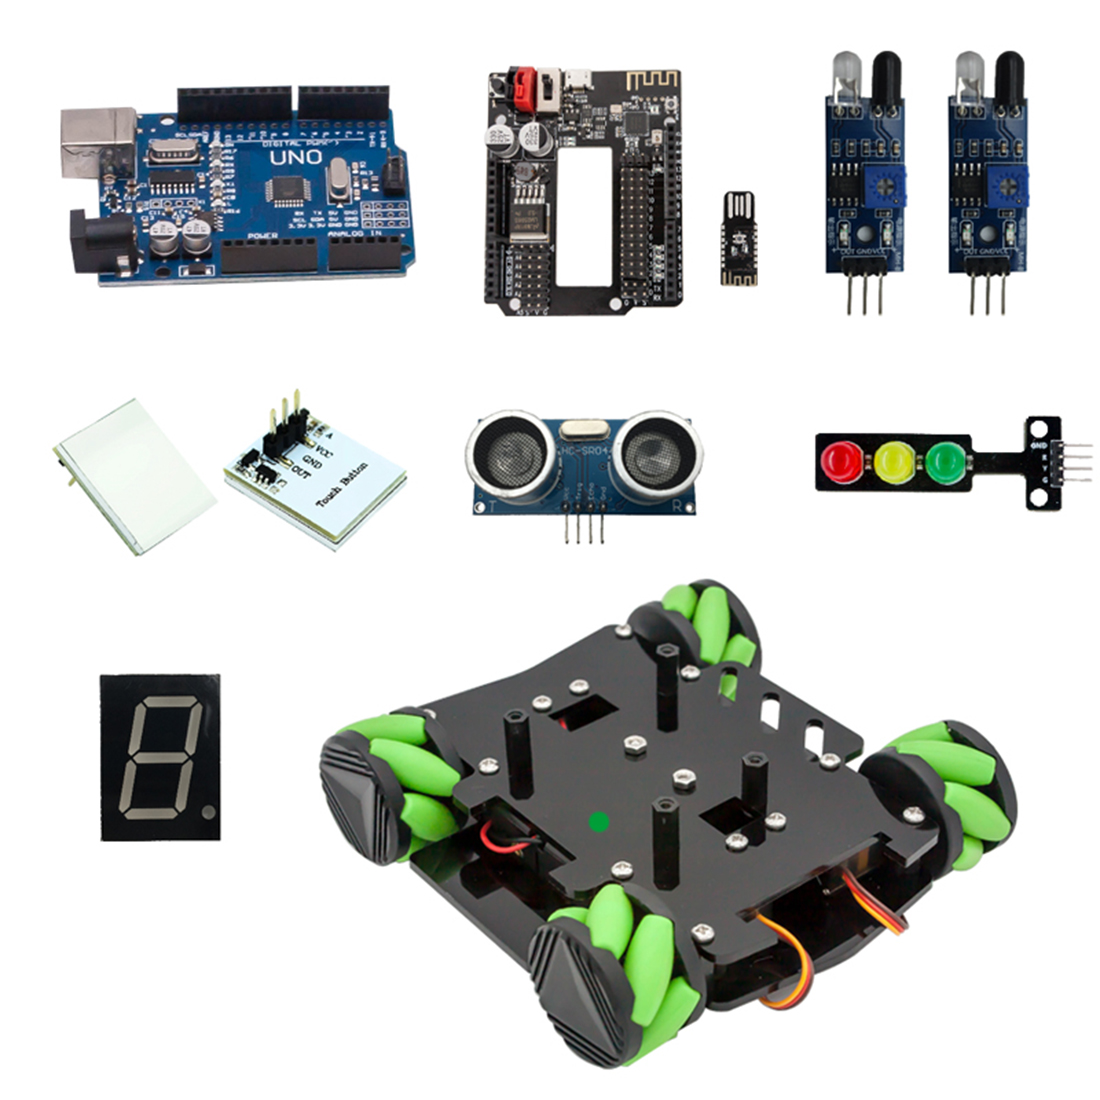 1pcs DIY Obstacle Avoidance Smart Programmable Robot Car Educational Learning Kit With Mecanum Wheels For Arduino UNO - Set A